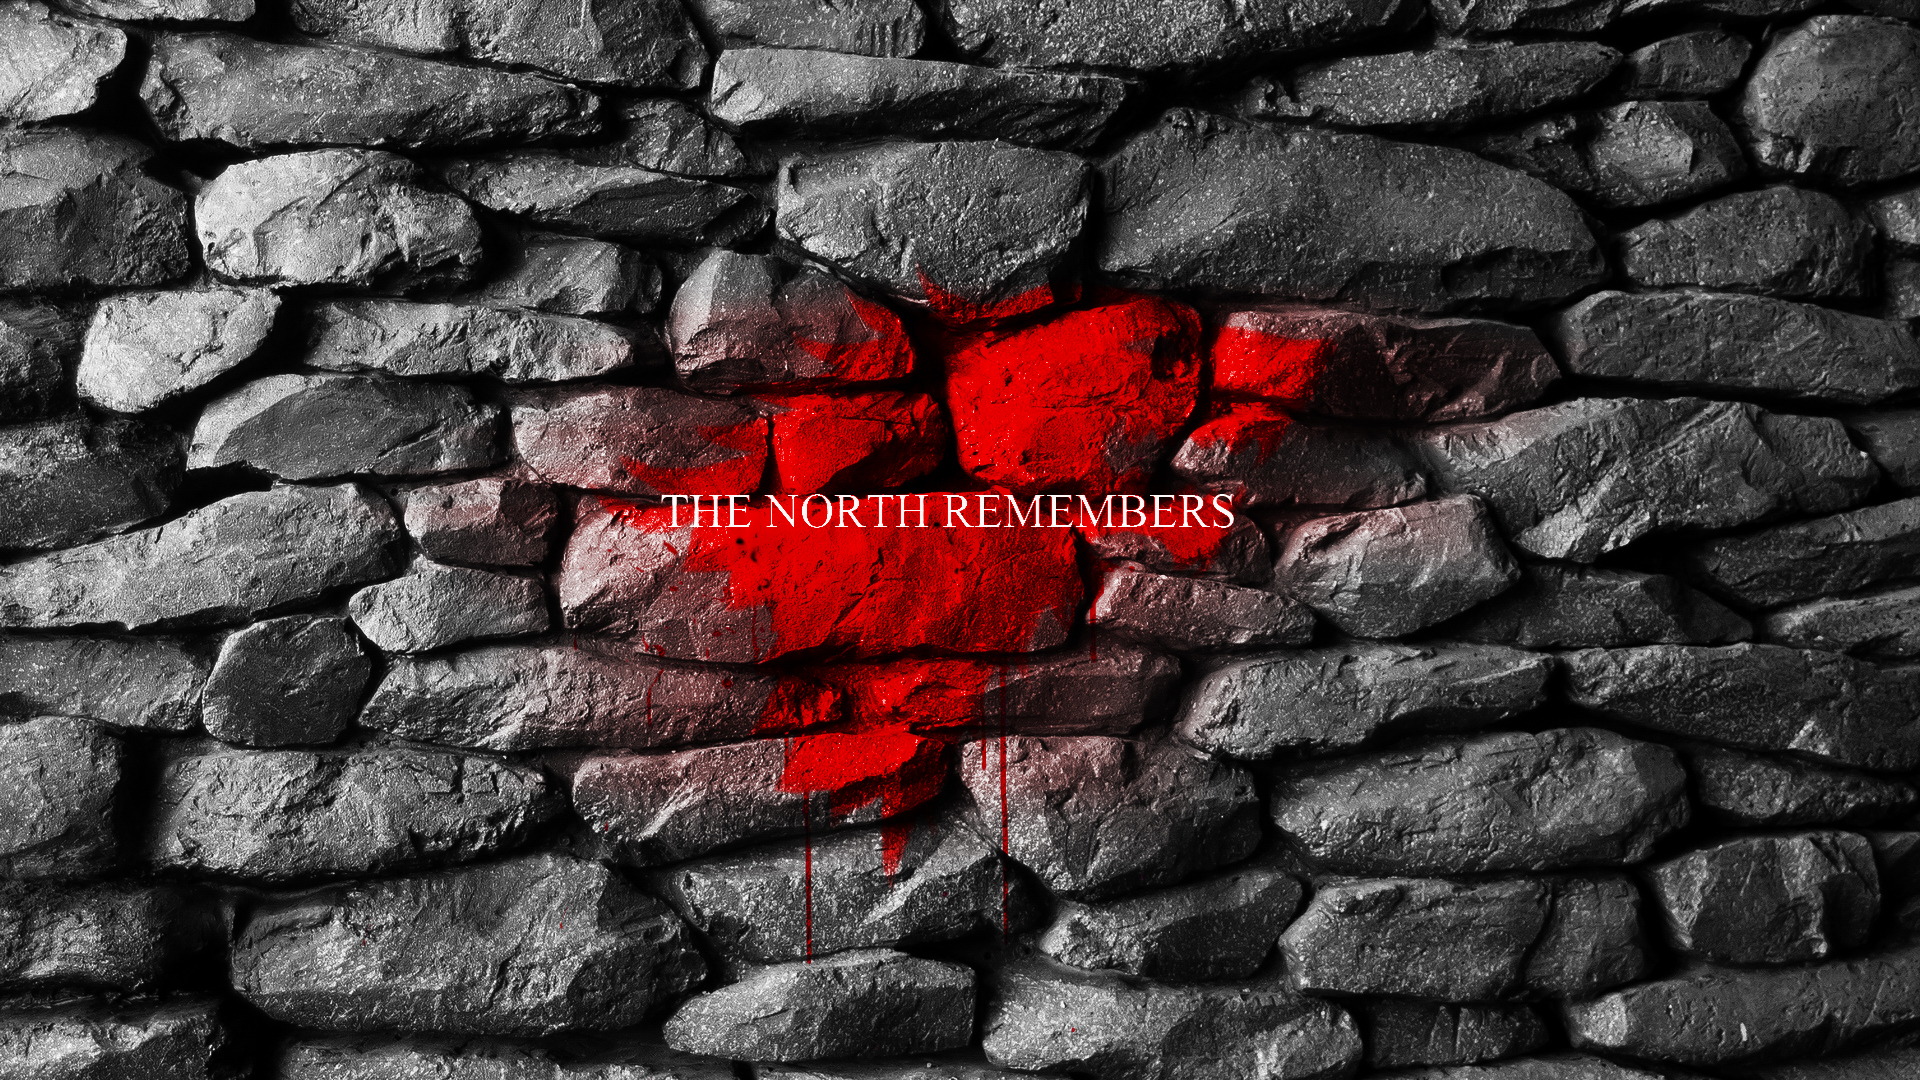 Beautiful Wallpapers With Quotes Of Life Download The North Remembers Wallpaper Gallery